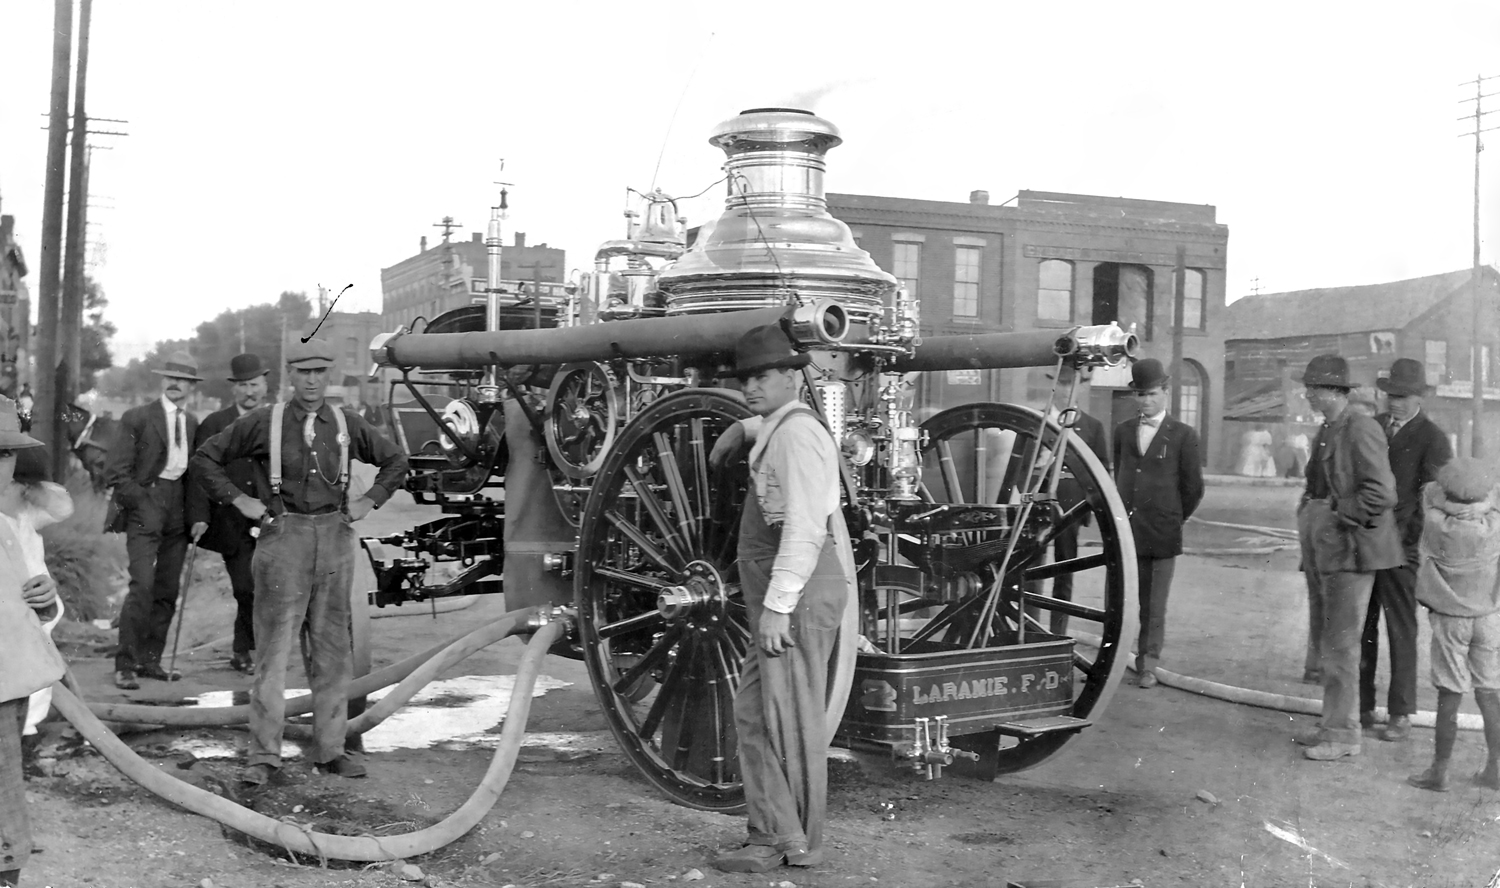 Ed Ferber helping with the new Steam engine around 1900 (right)